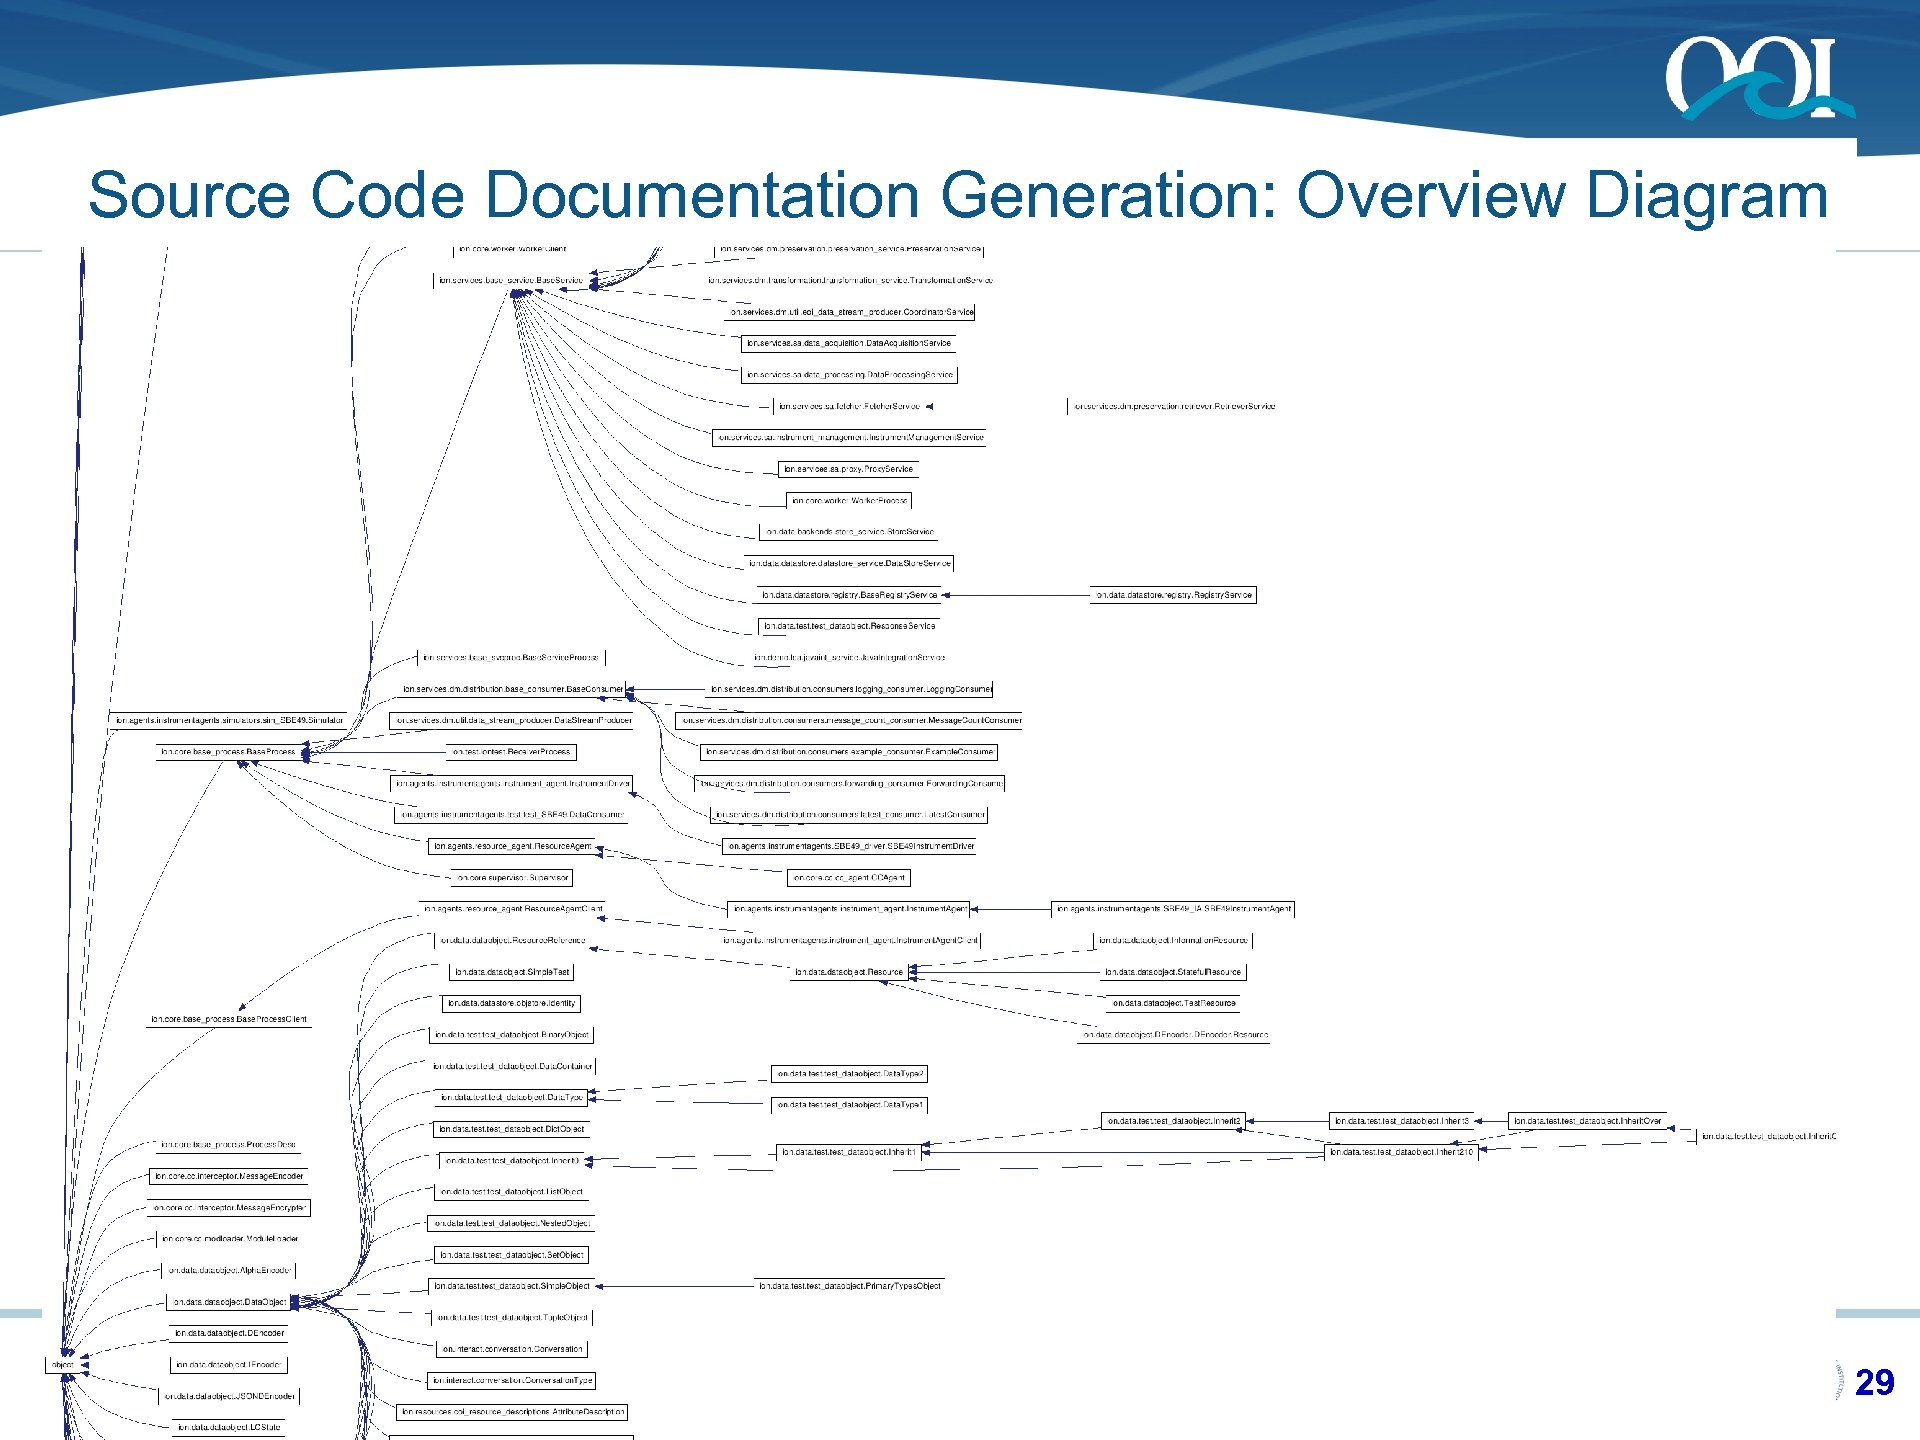 Source Code Documentation Generation: Overview Diagram OOI CI LCA REVIEW August 2010 29